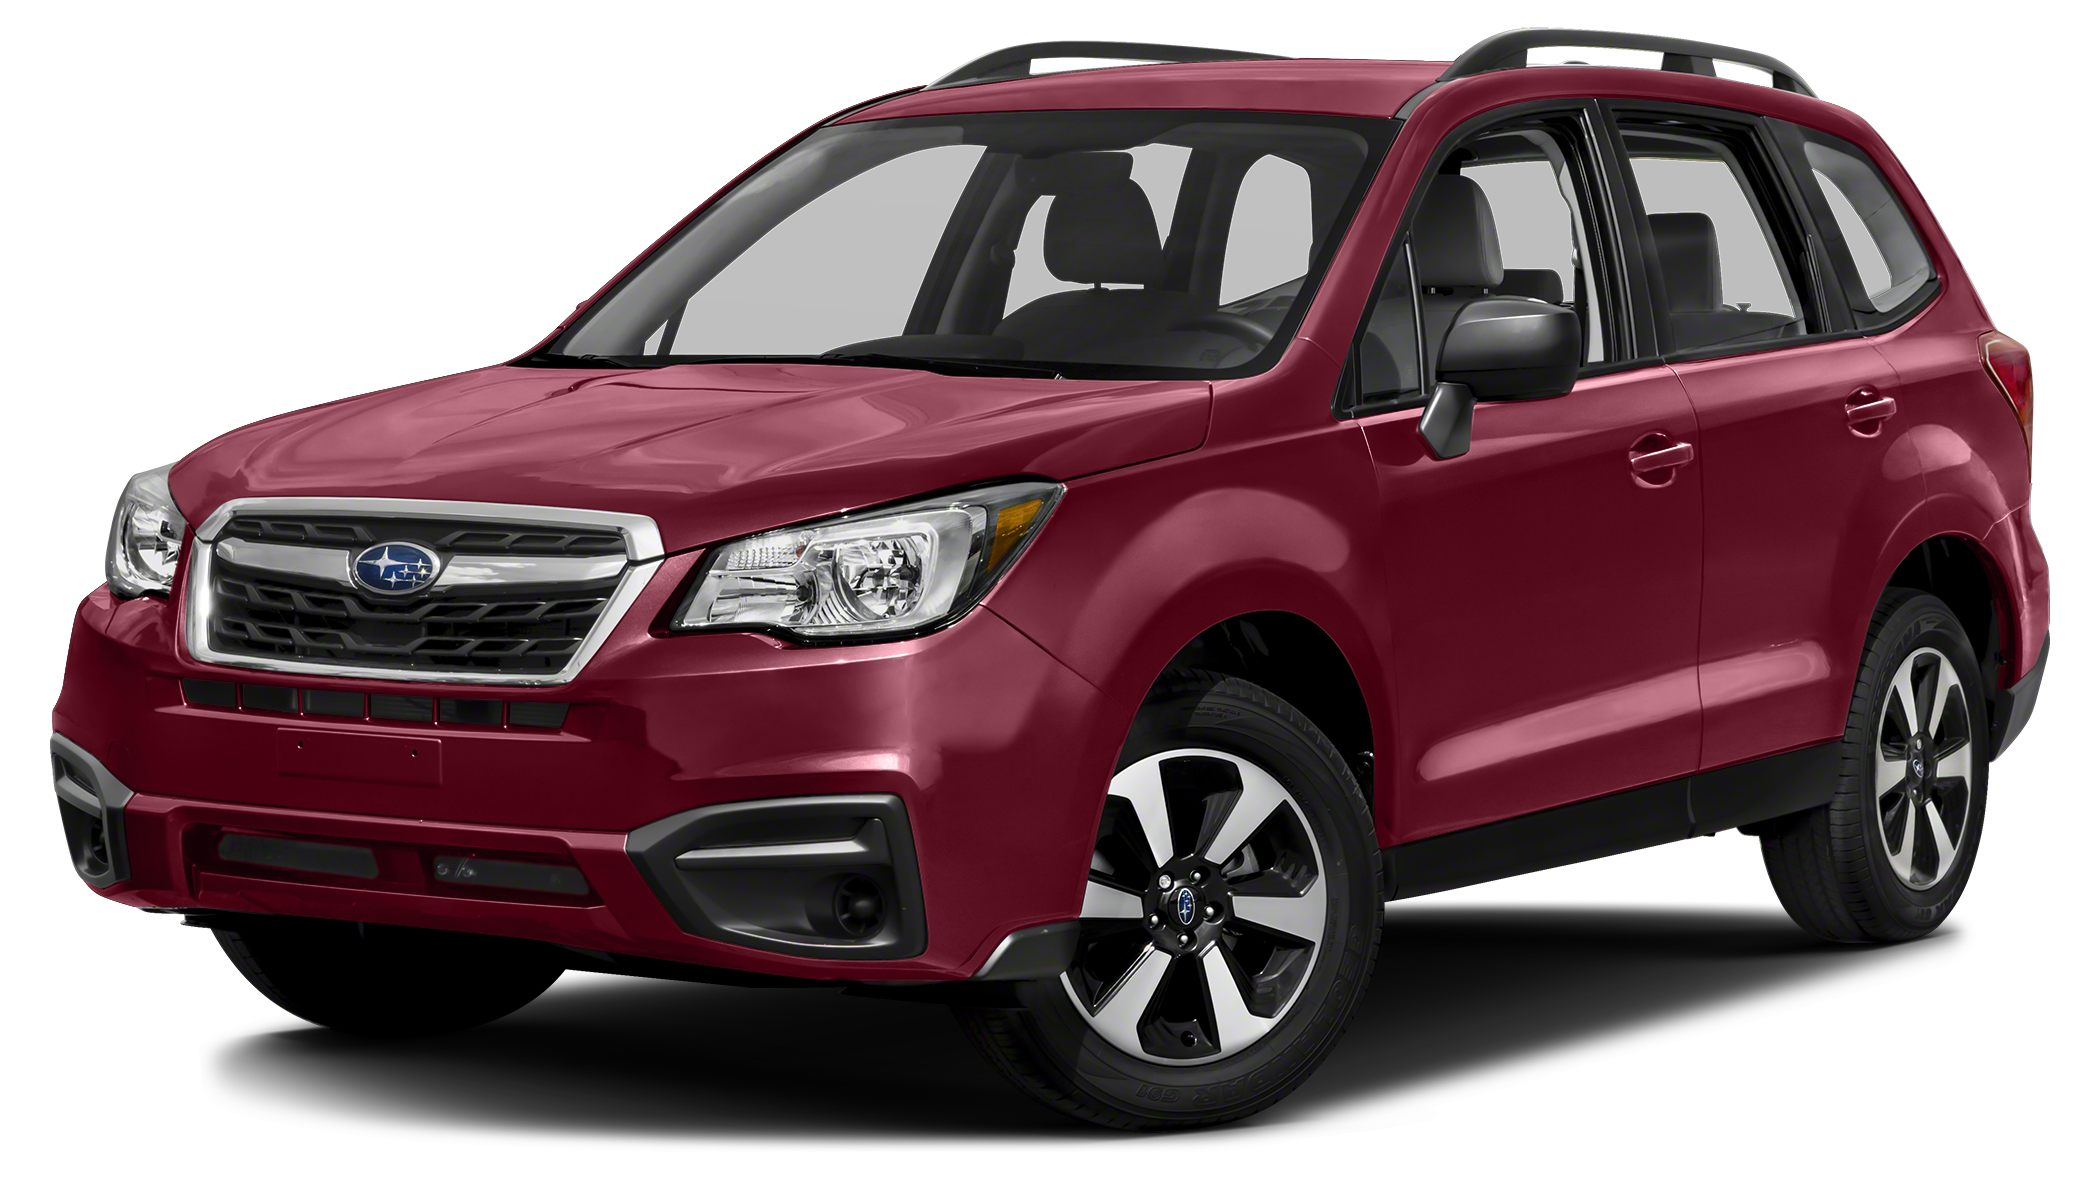 2017 Subaru Forester 25i Thank you for visiting another one of Conley Subarus exclusive listings